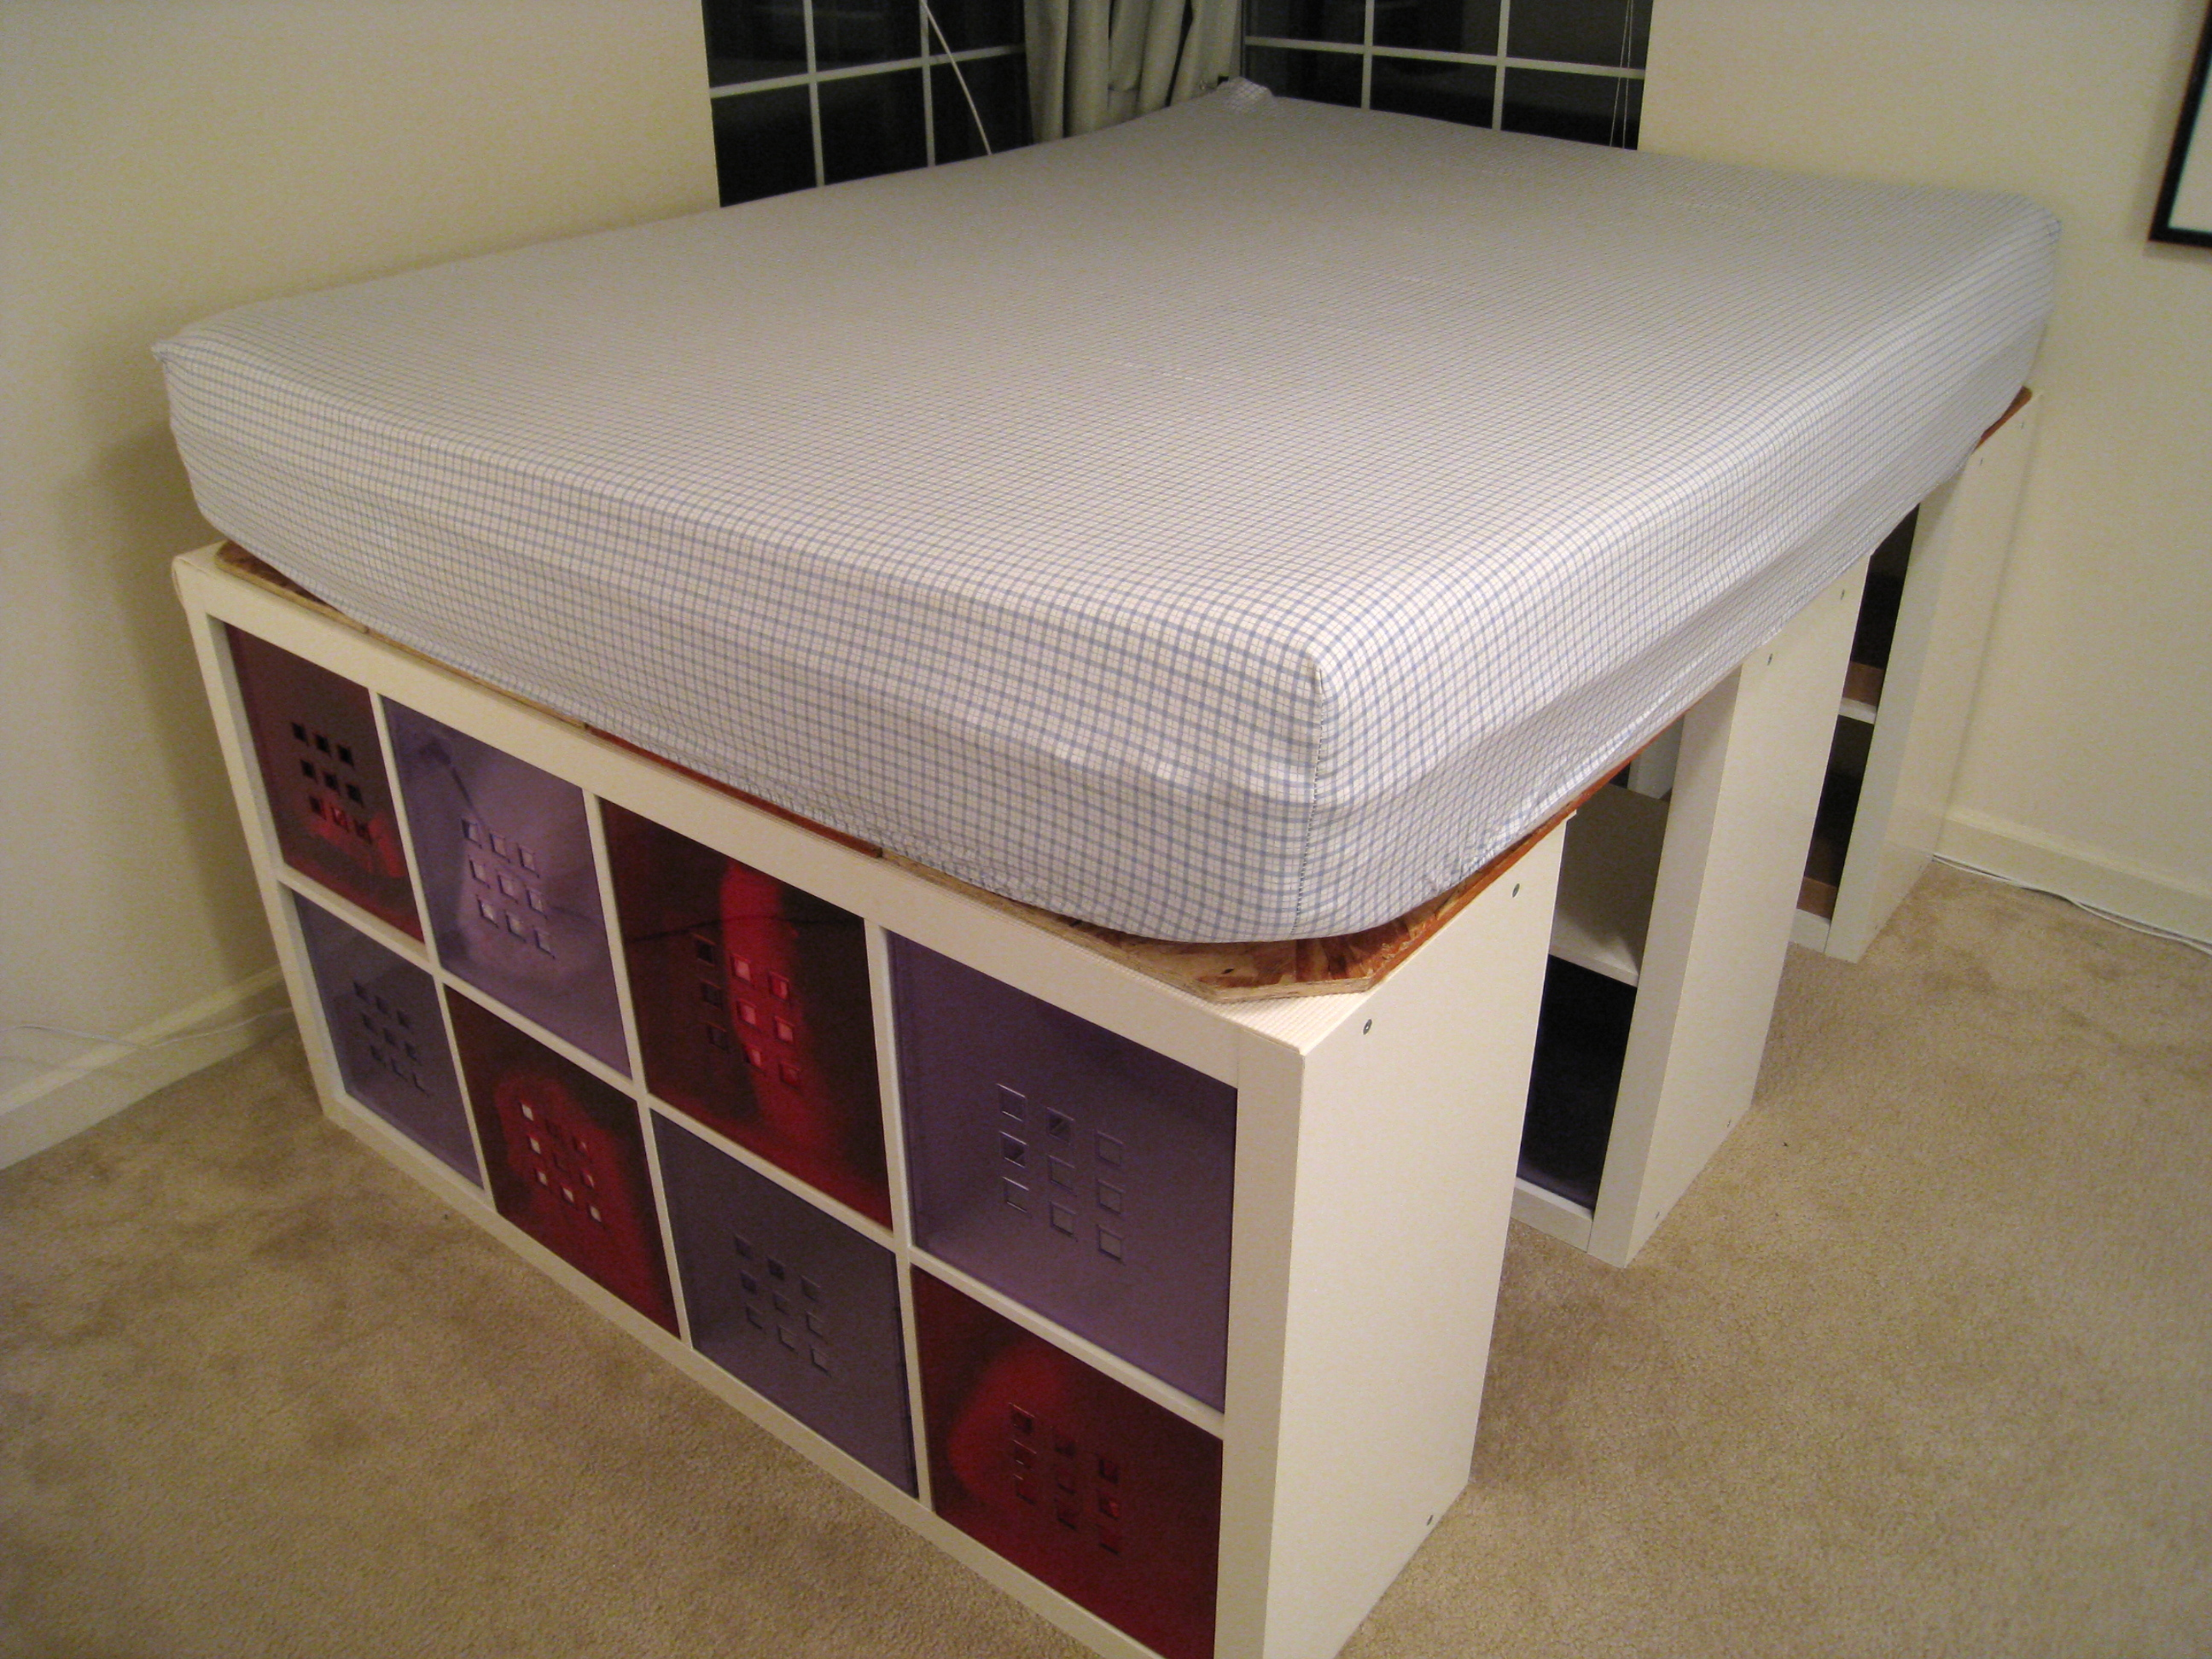 Schreibtisch Ikea Galant Birke ~ inspired by ikea hacker i created underbed storage using ikea expedit